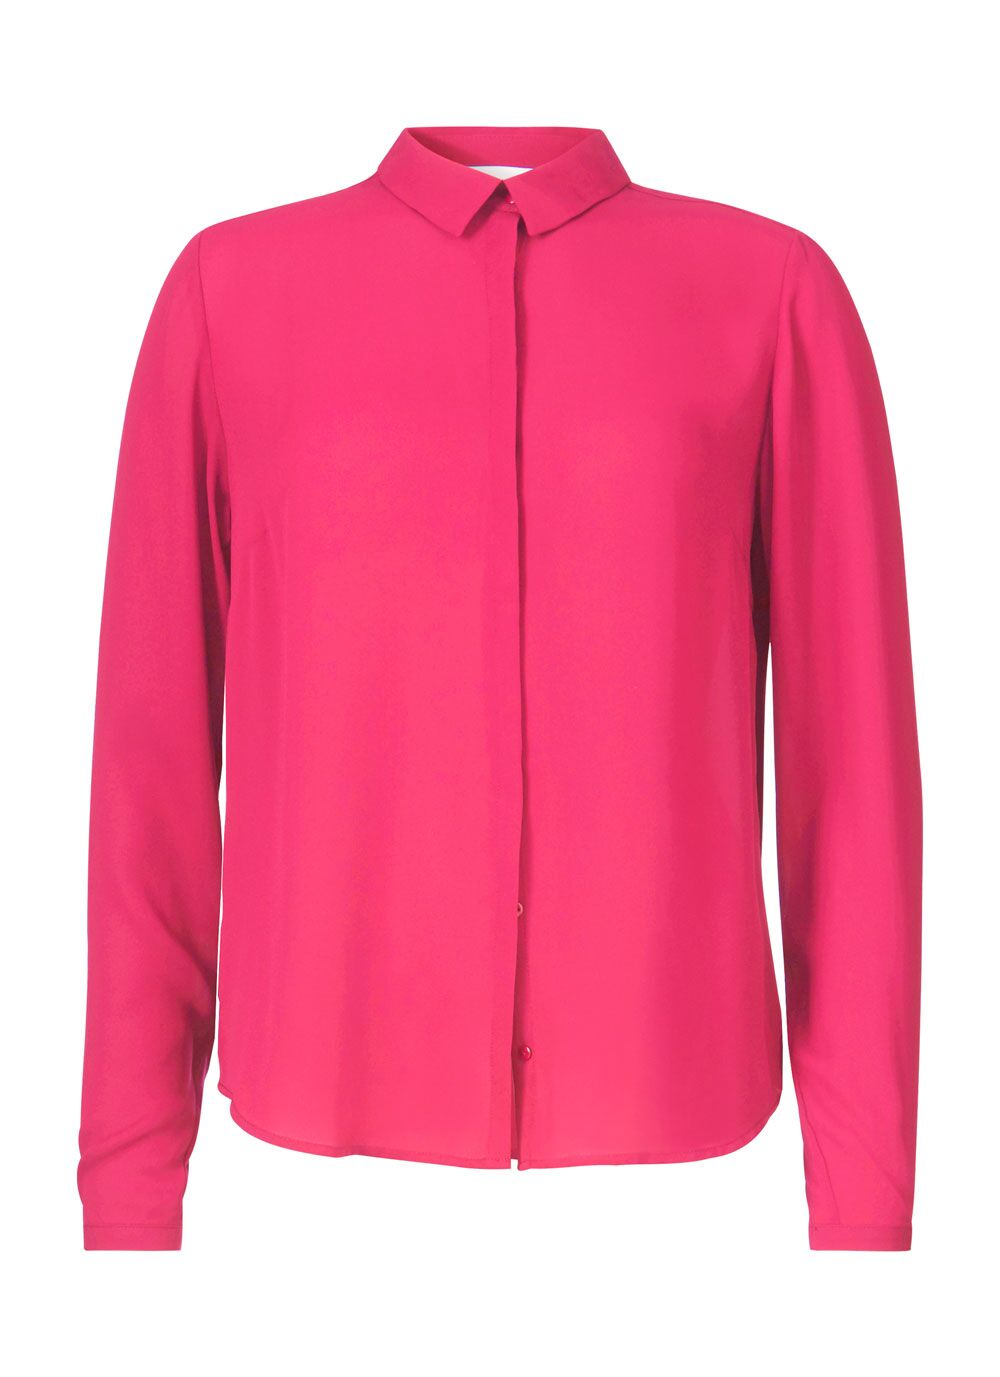 Cyler Collar Shirt - Power Pink